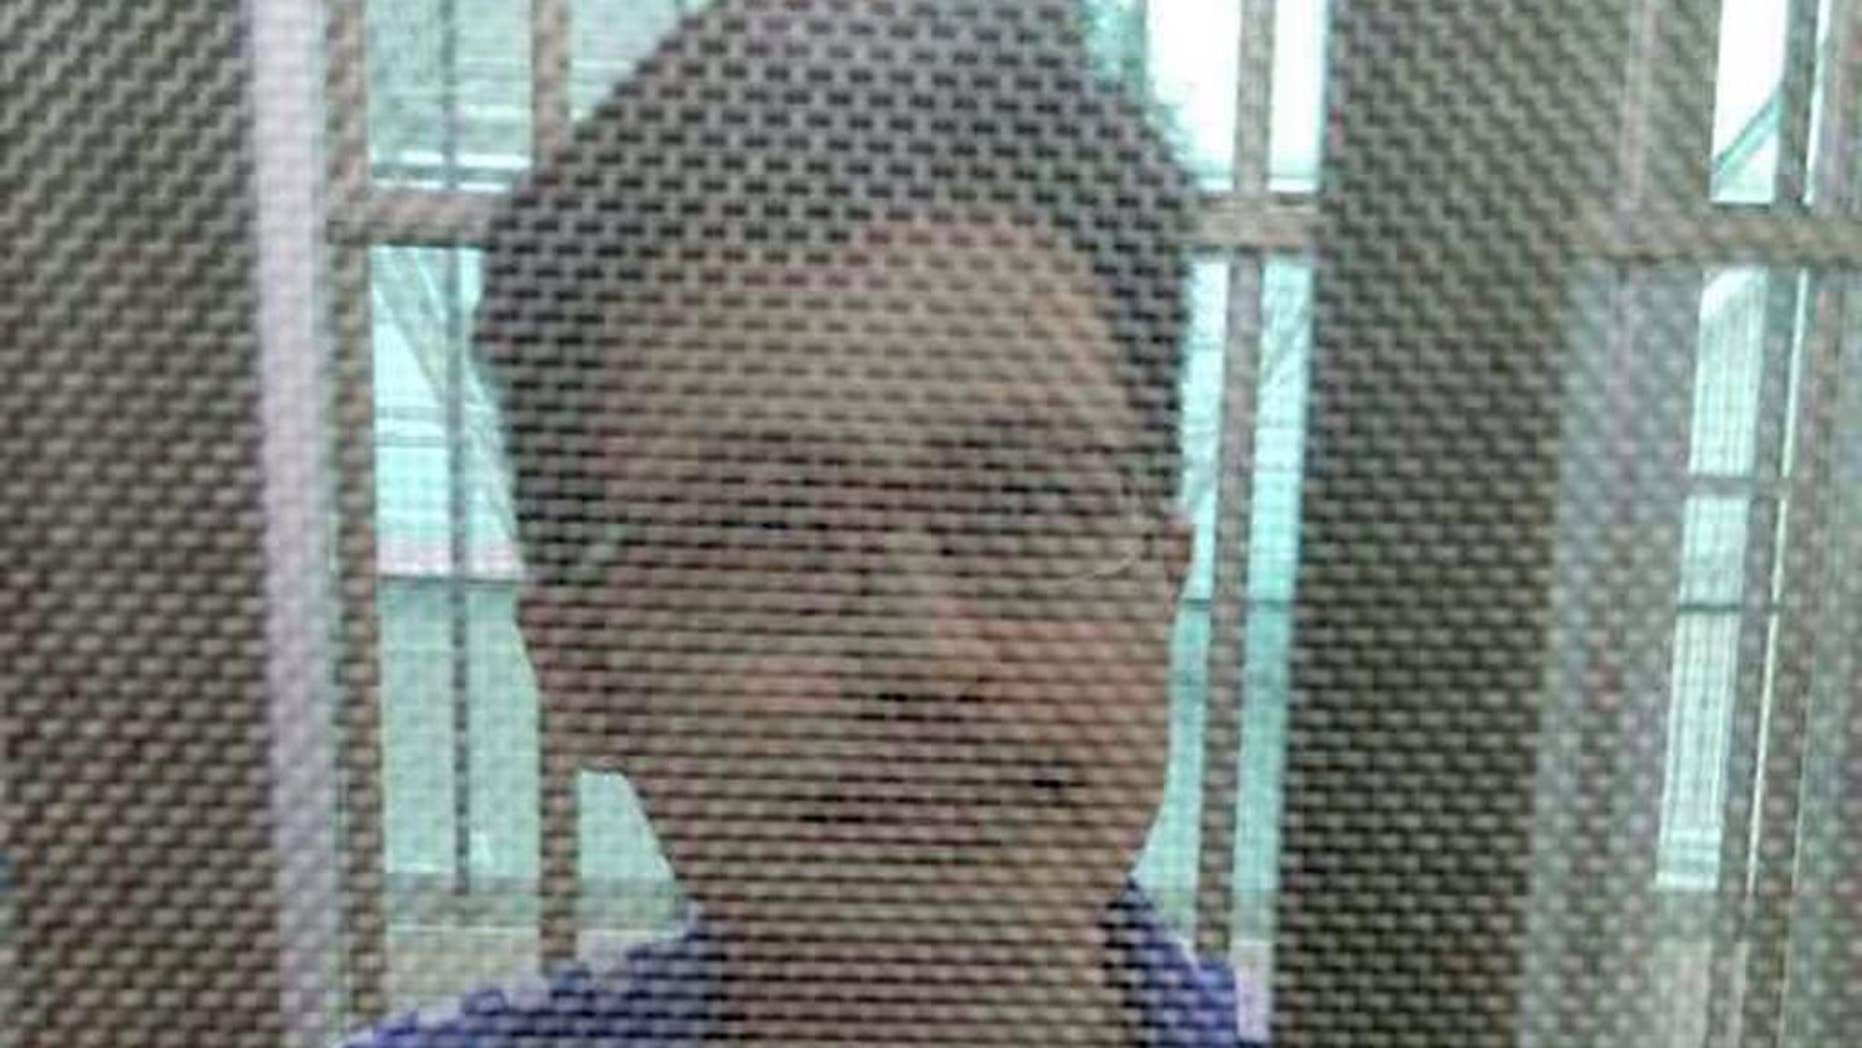 In this December 2014 photo, Yang Maodong, better known by his penname Guo Feixiong, sits in a detention center in Guangzhou in southern China's Guangdong province. The sister of a prominent imprisoned Chinese political activist said Friday, May 6, 2016, that she fears her brother is seriously ill and is urging the authorities to allow him access to better medical treatment, in what an international rights group said is the latest example of China routinely denying political prisoners adequate care. (AP Photo) NO SALES